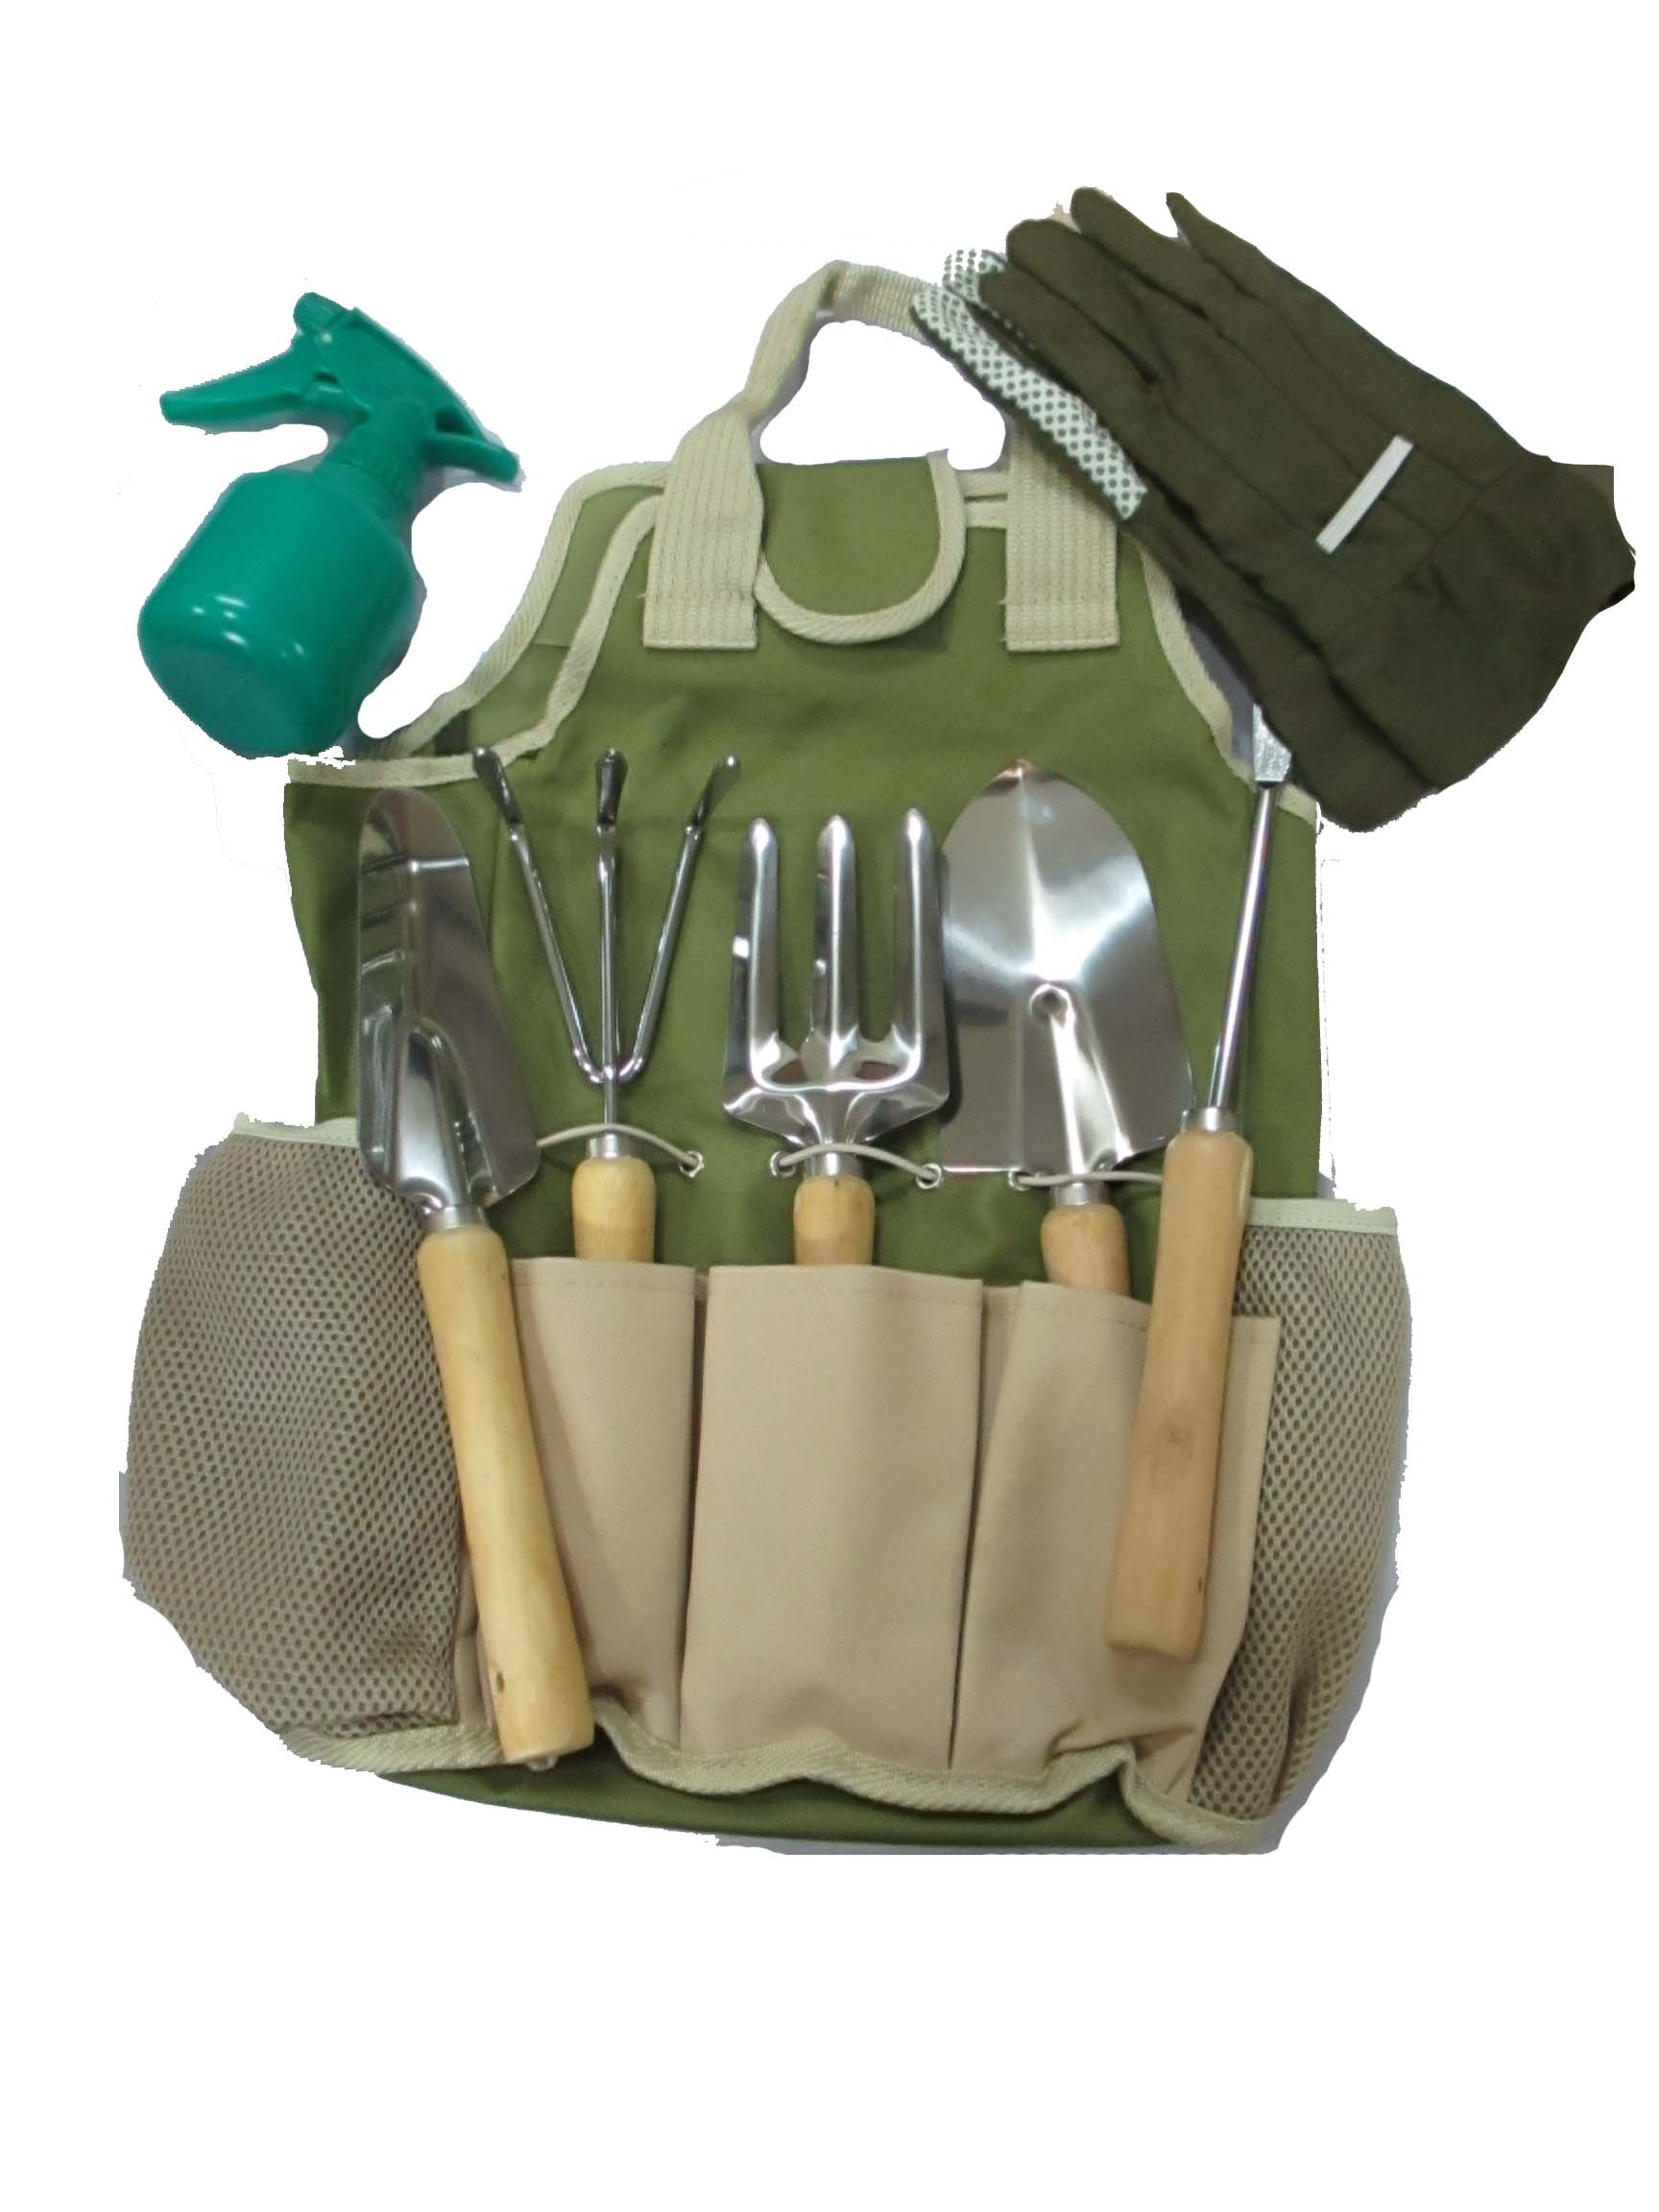 Prism Garden Tool Carry Bag WCA552.04 Garden Tool Kit(8 Tools)